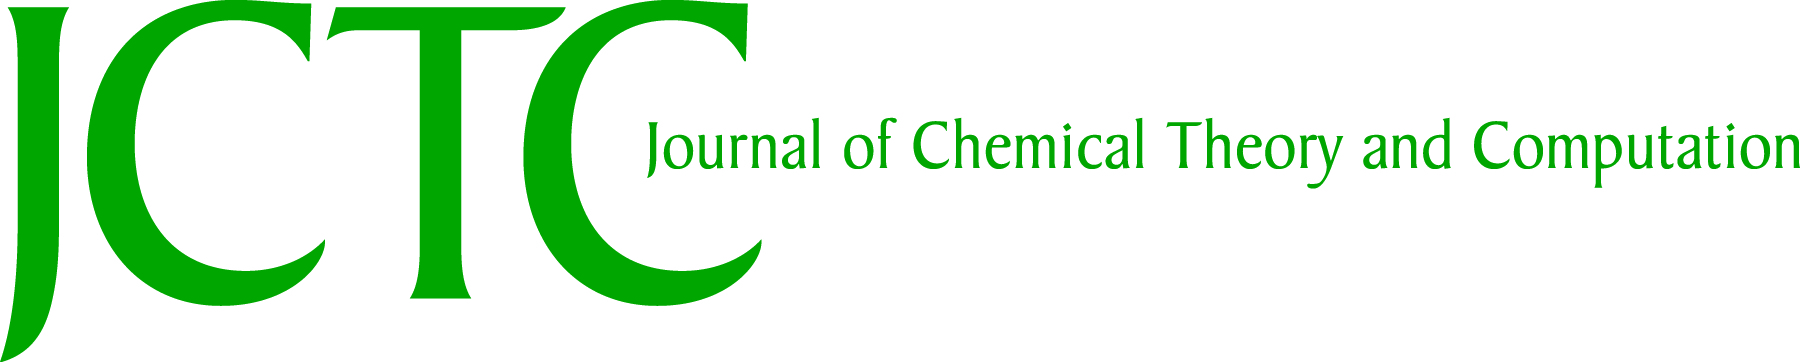 Journal of Chemical Theory and Computation